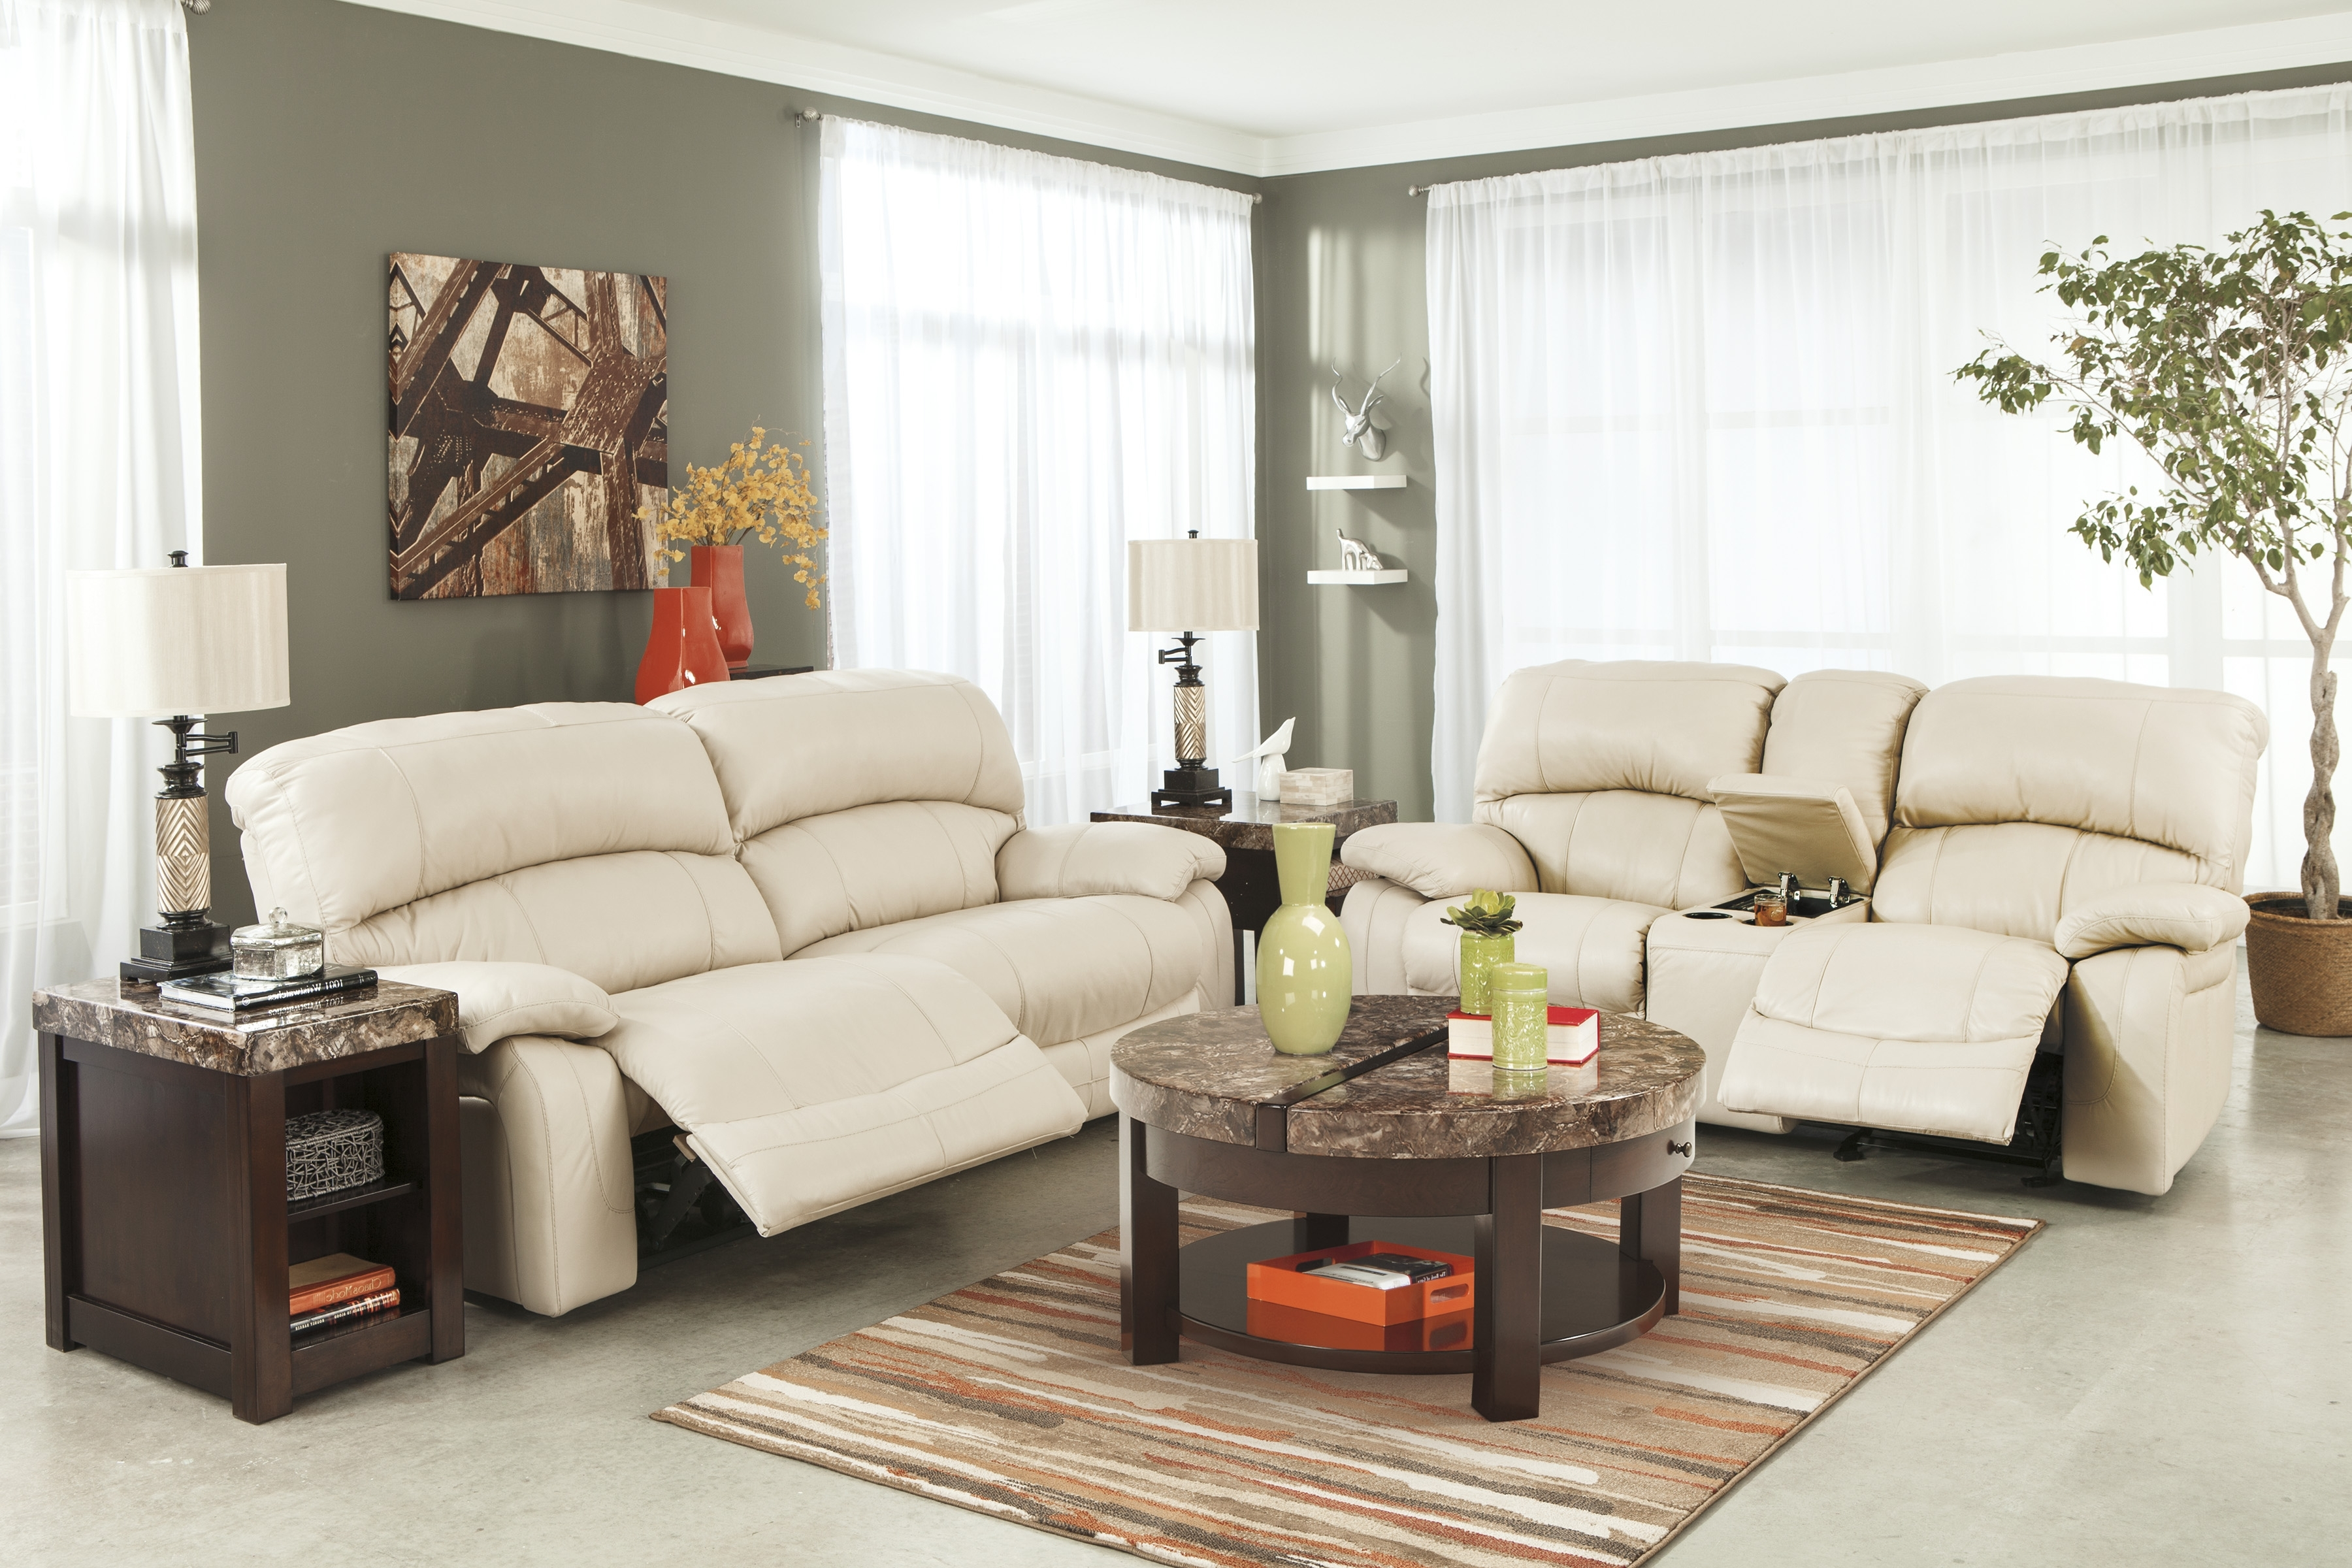 Jacksonville Nc Sectional Sofas With Regard To Well Known Power Sofa Set Tags : Reclining Sofa Loveseat Sets Modern Recliner (Gallery 14 of 15)